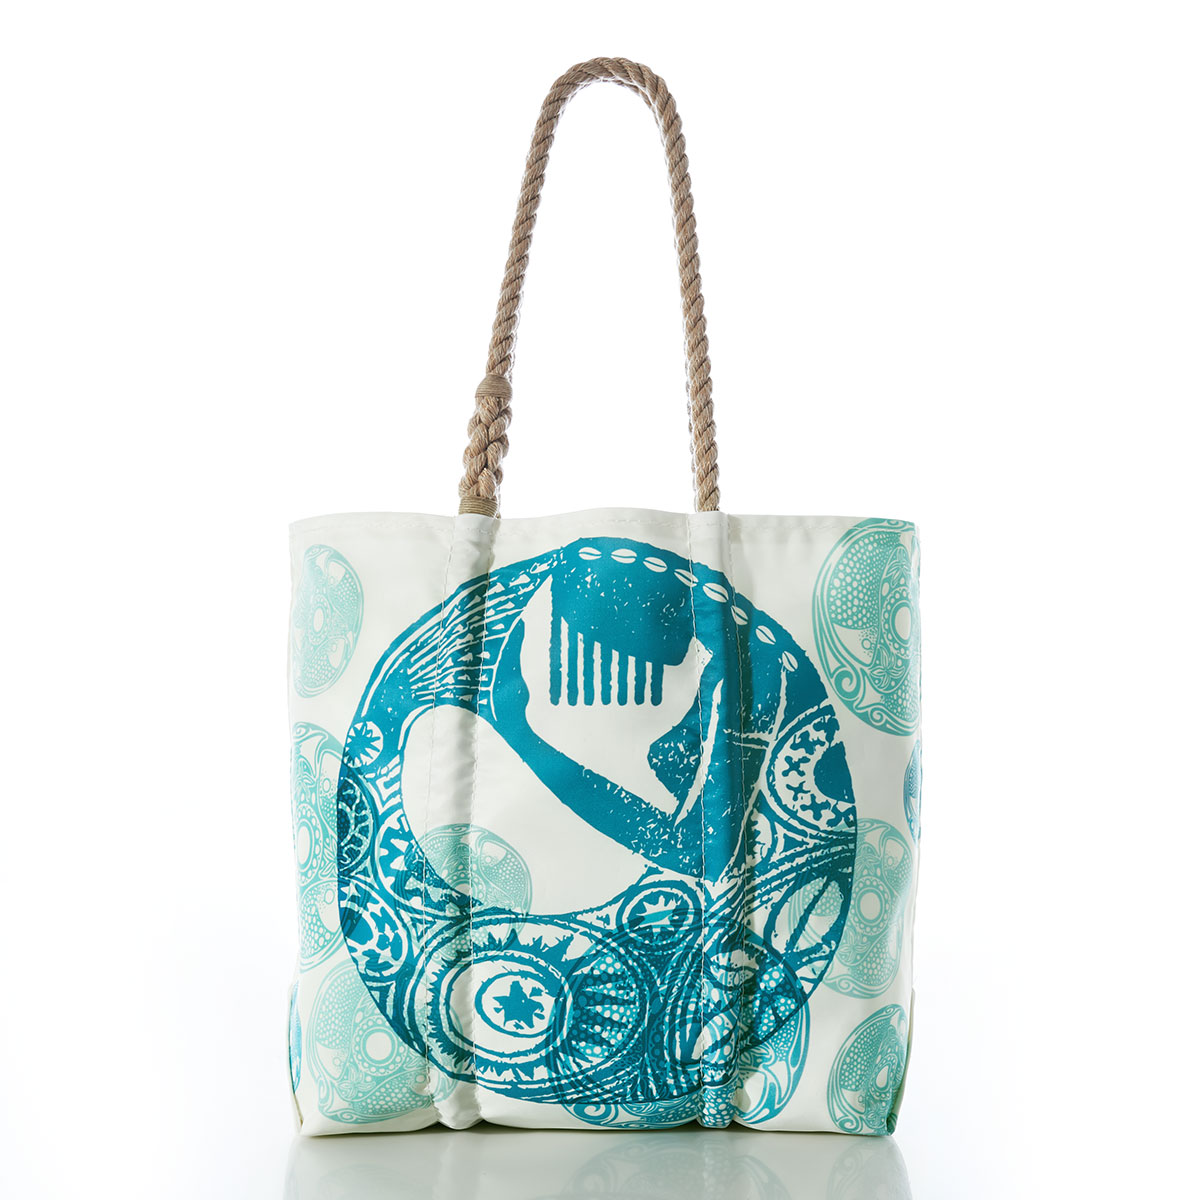 Large shopping bag Gift for her shells /& coral tote bag Ocean themed tote bag Fabric tote bag lined with inside pocket gift for her